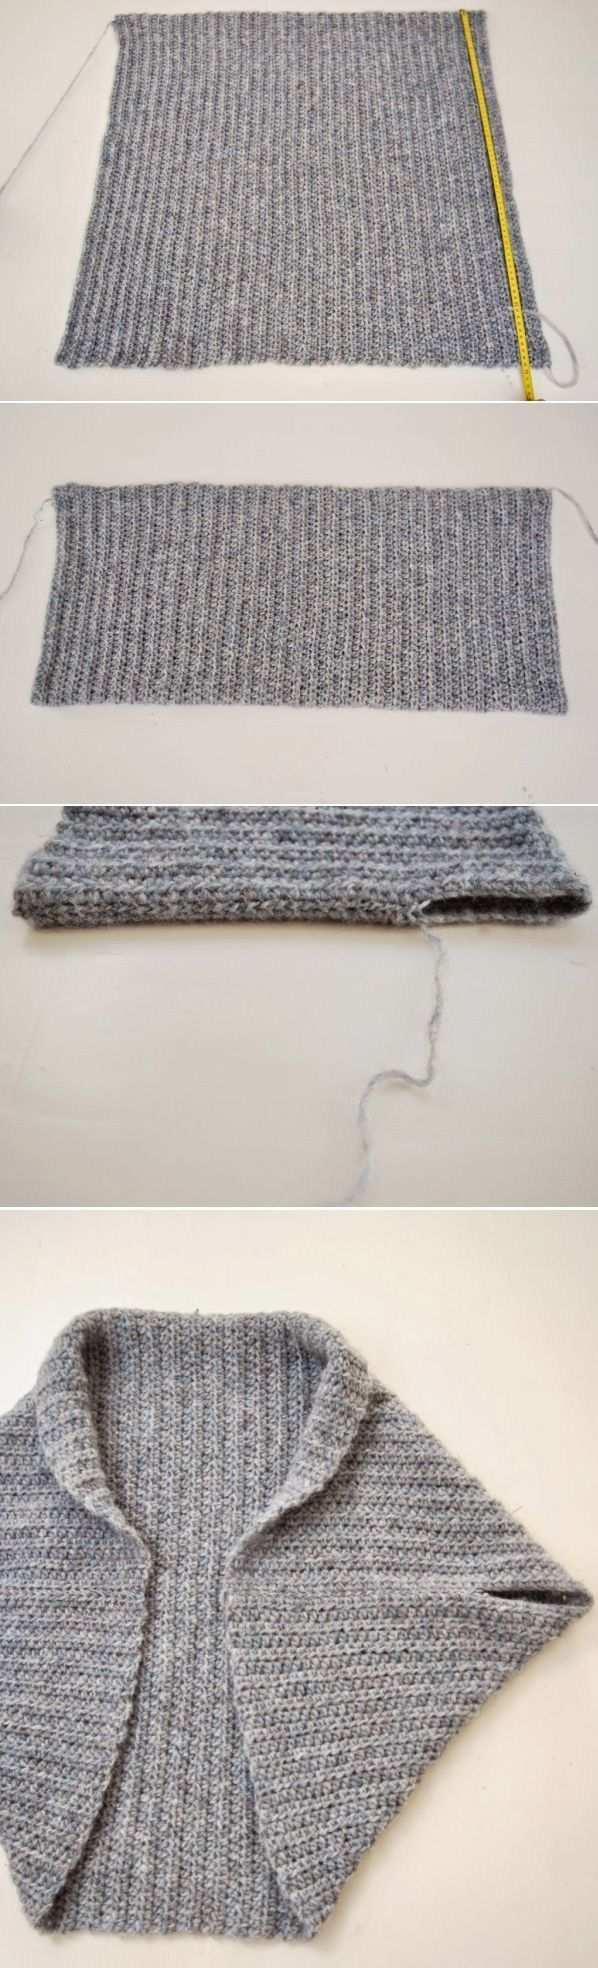 Easy Shrug Knitting Patterns